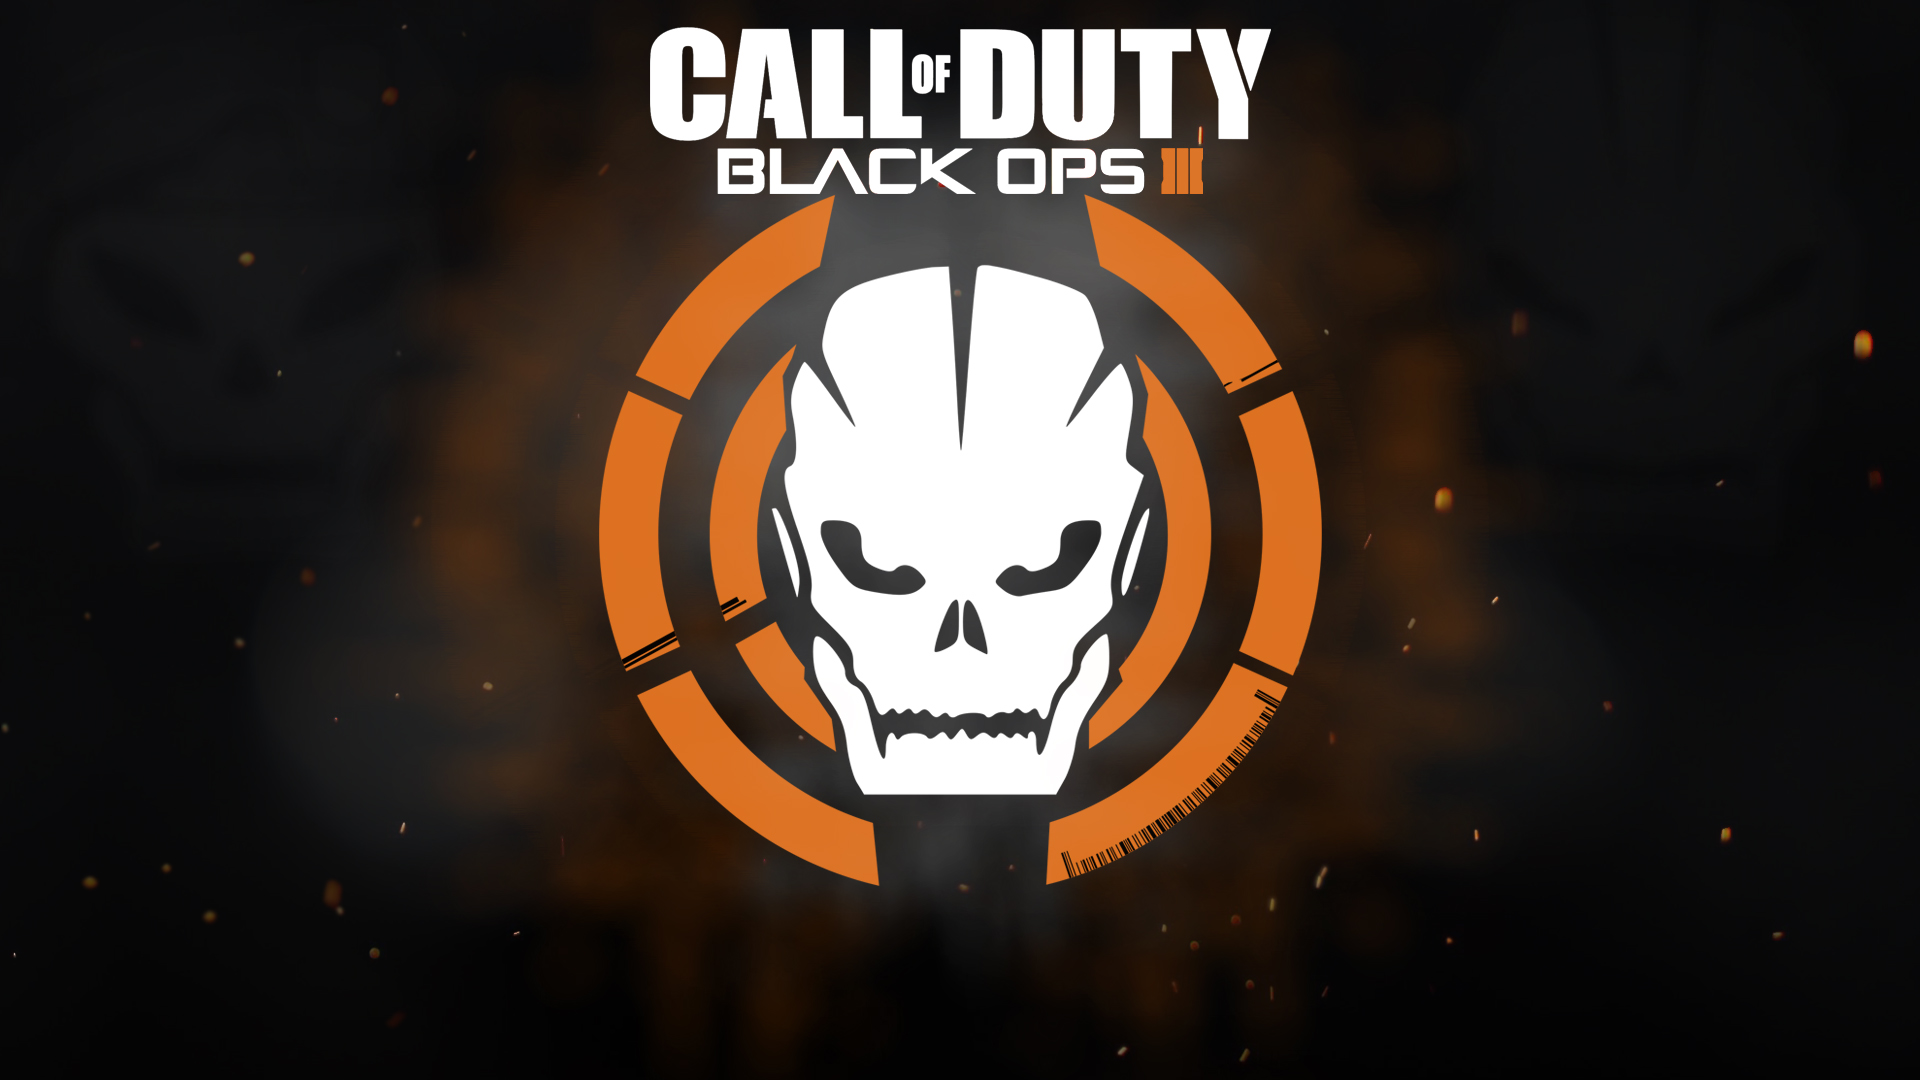 Call Of Duty Black Ops 3 Hd Wallpapers: Call Of Duty: Black Ops 3 HD Wallpapers Free Download